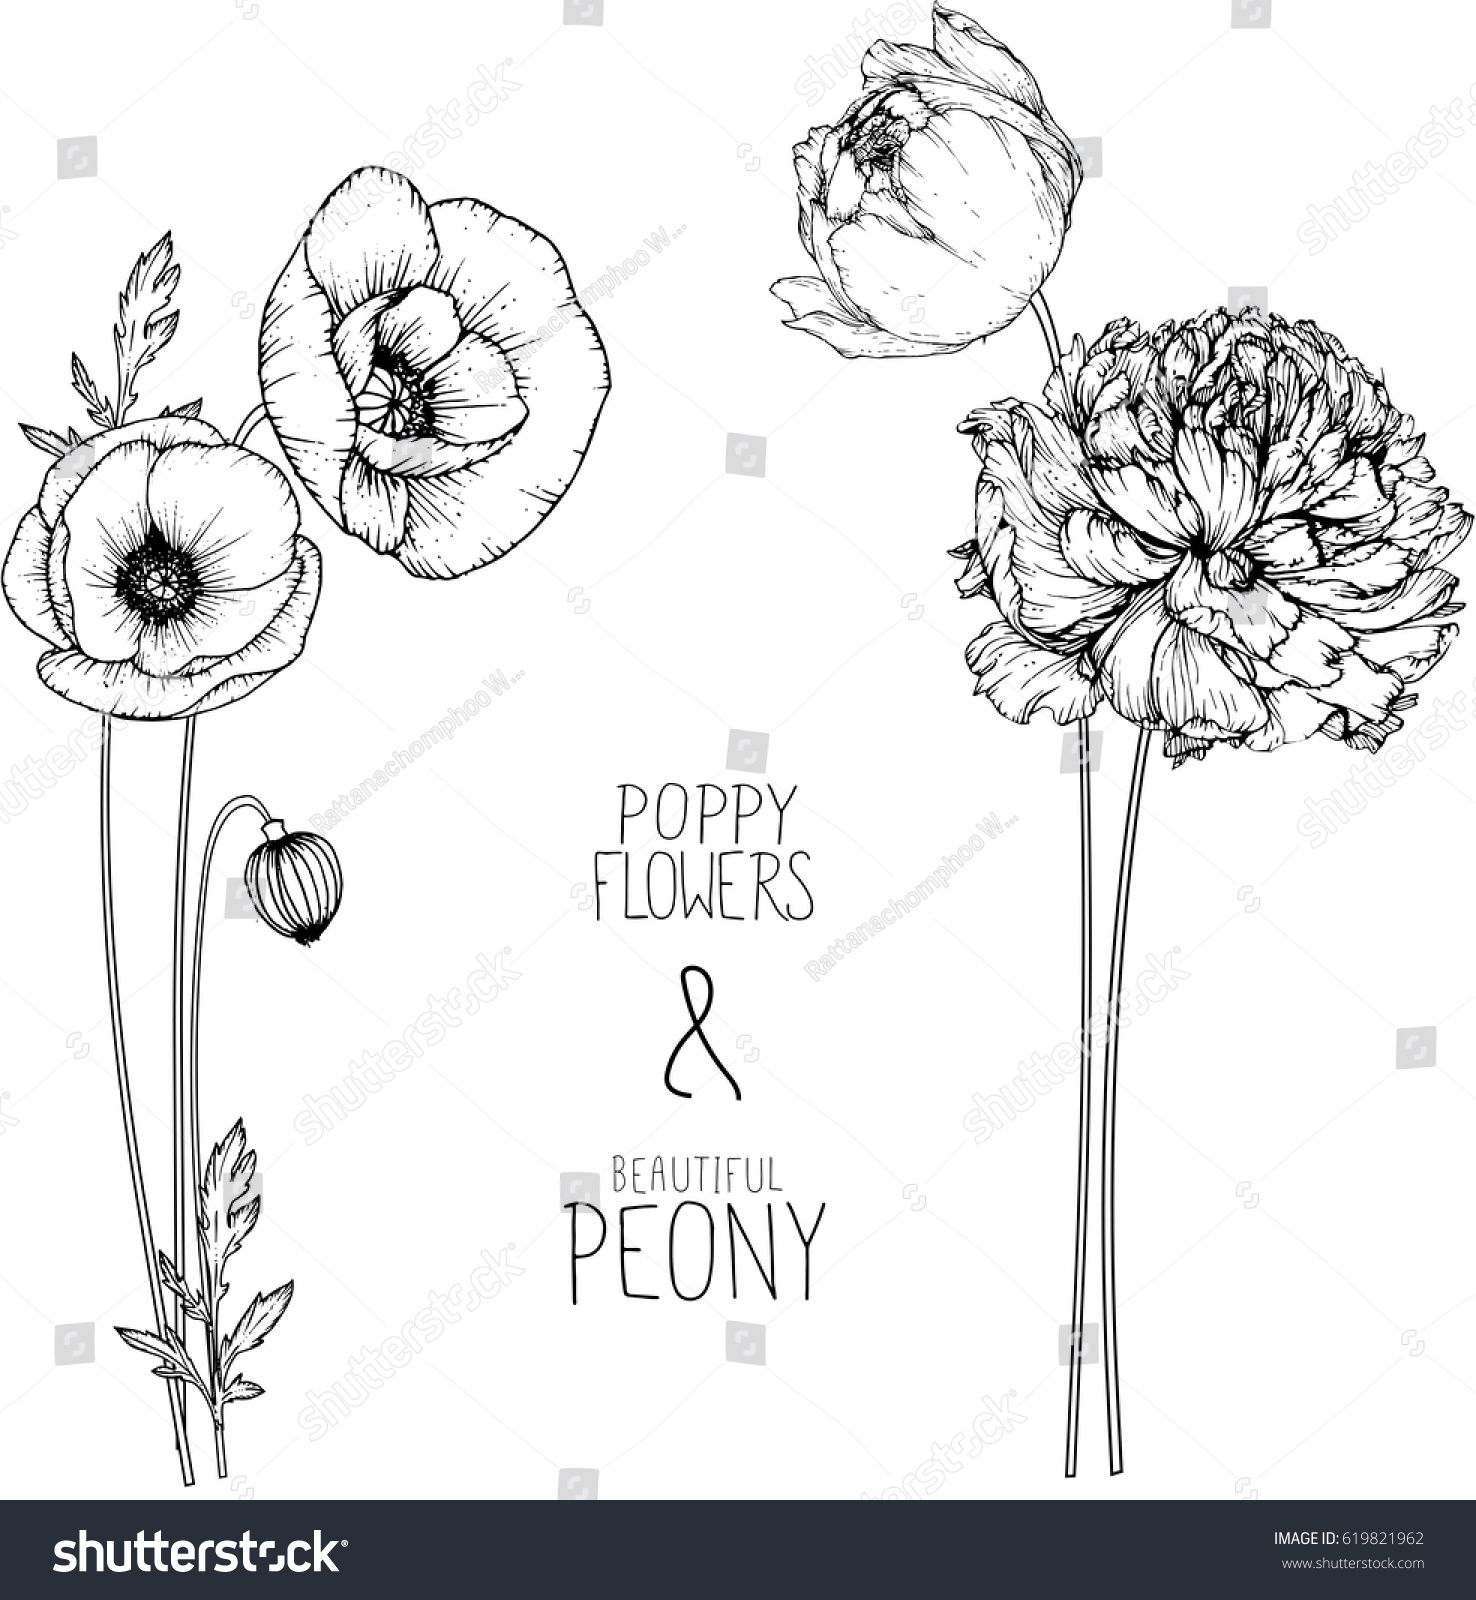 Flowers Drawing Peony And Poppy Flower Vector Illustration And Line